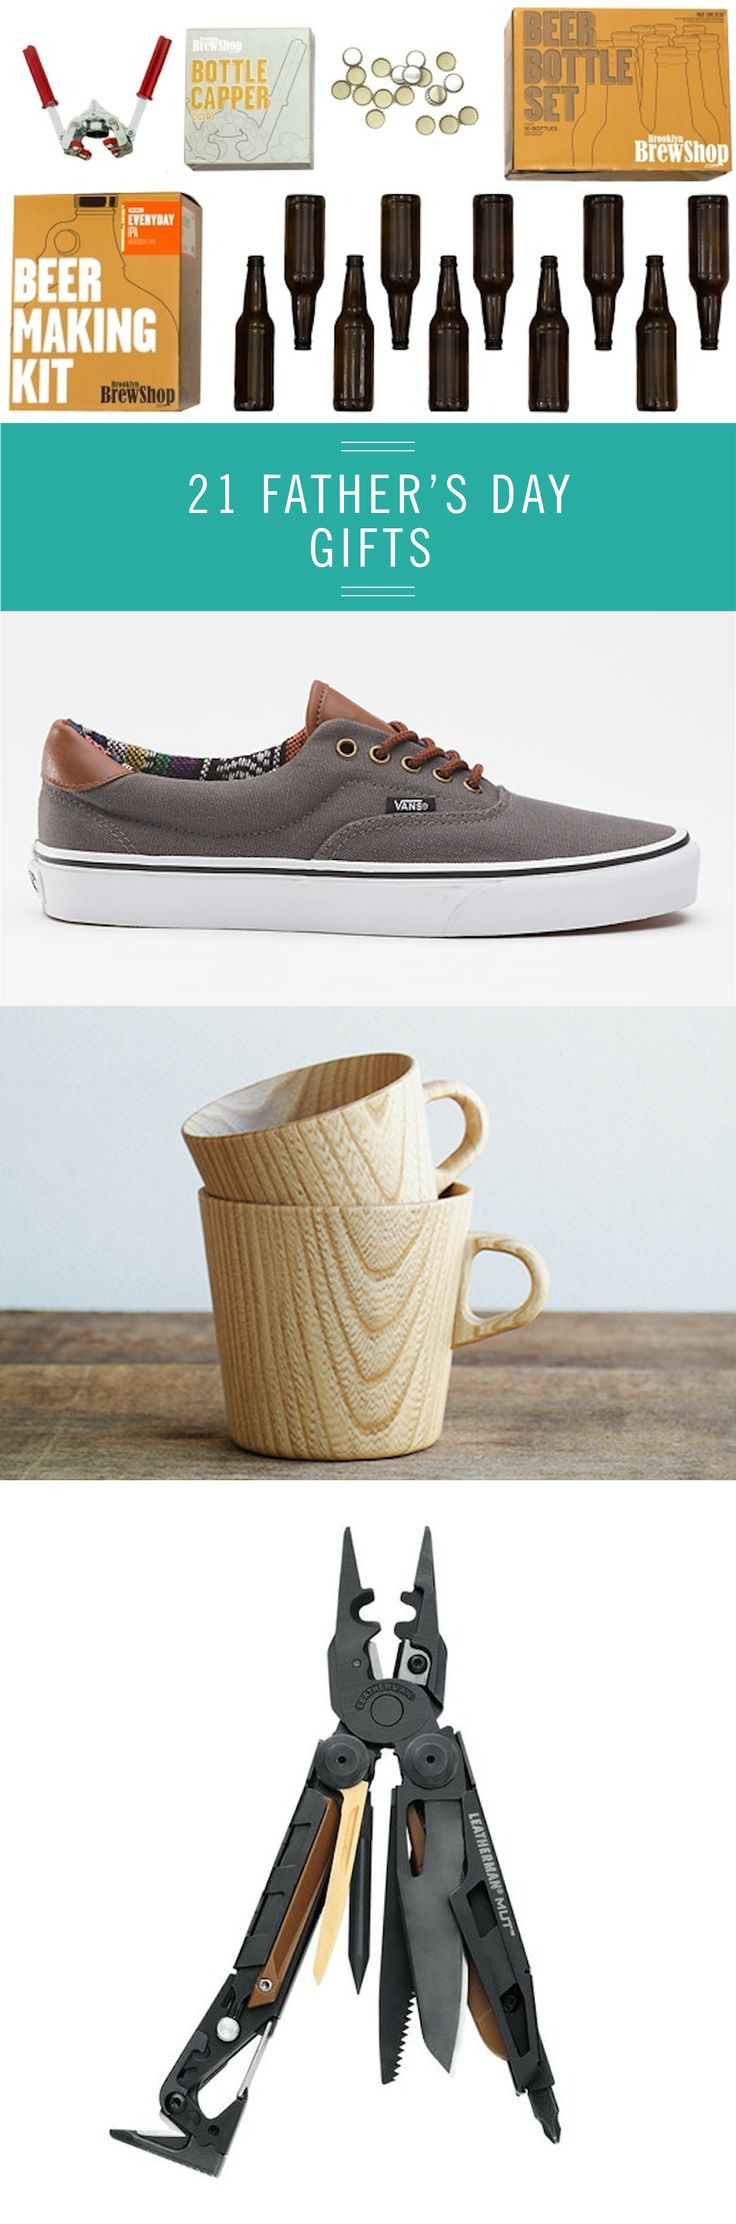 130 best Gifts: For Him. images on Pinterest | Christmas presents ...